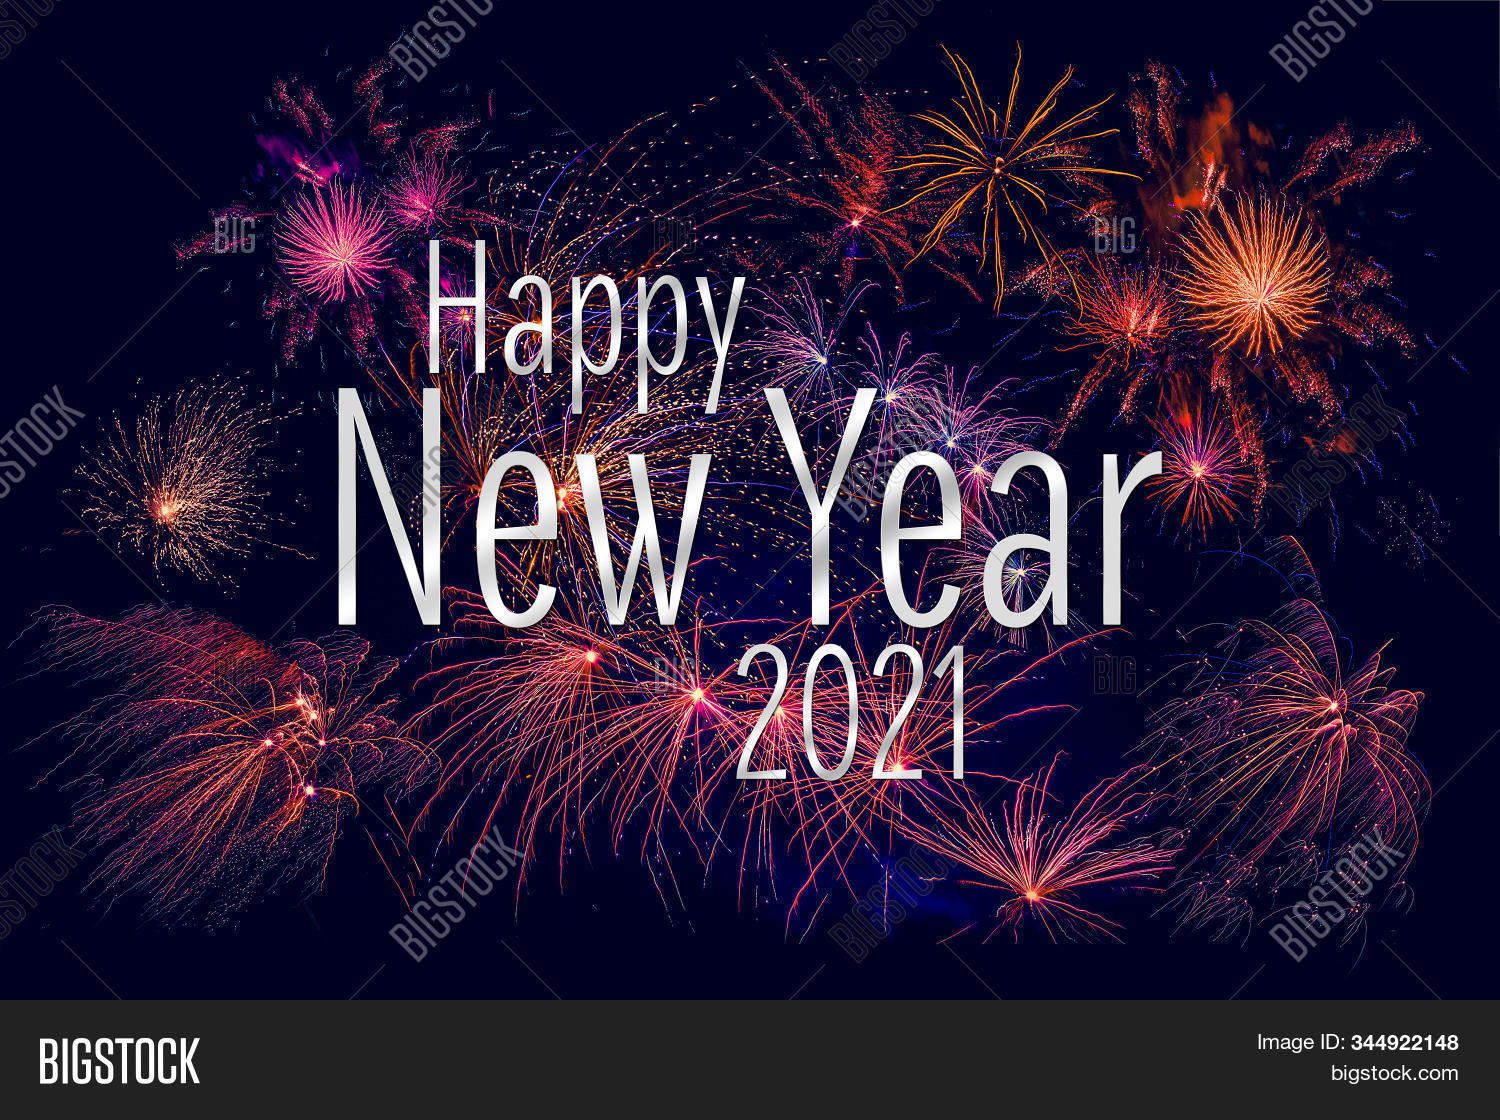 Happy New Year 2021 Image & Photo (Free Trial)  Bigstock